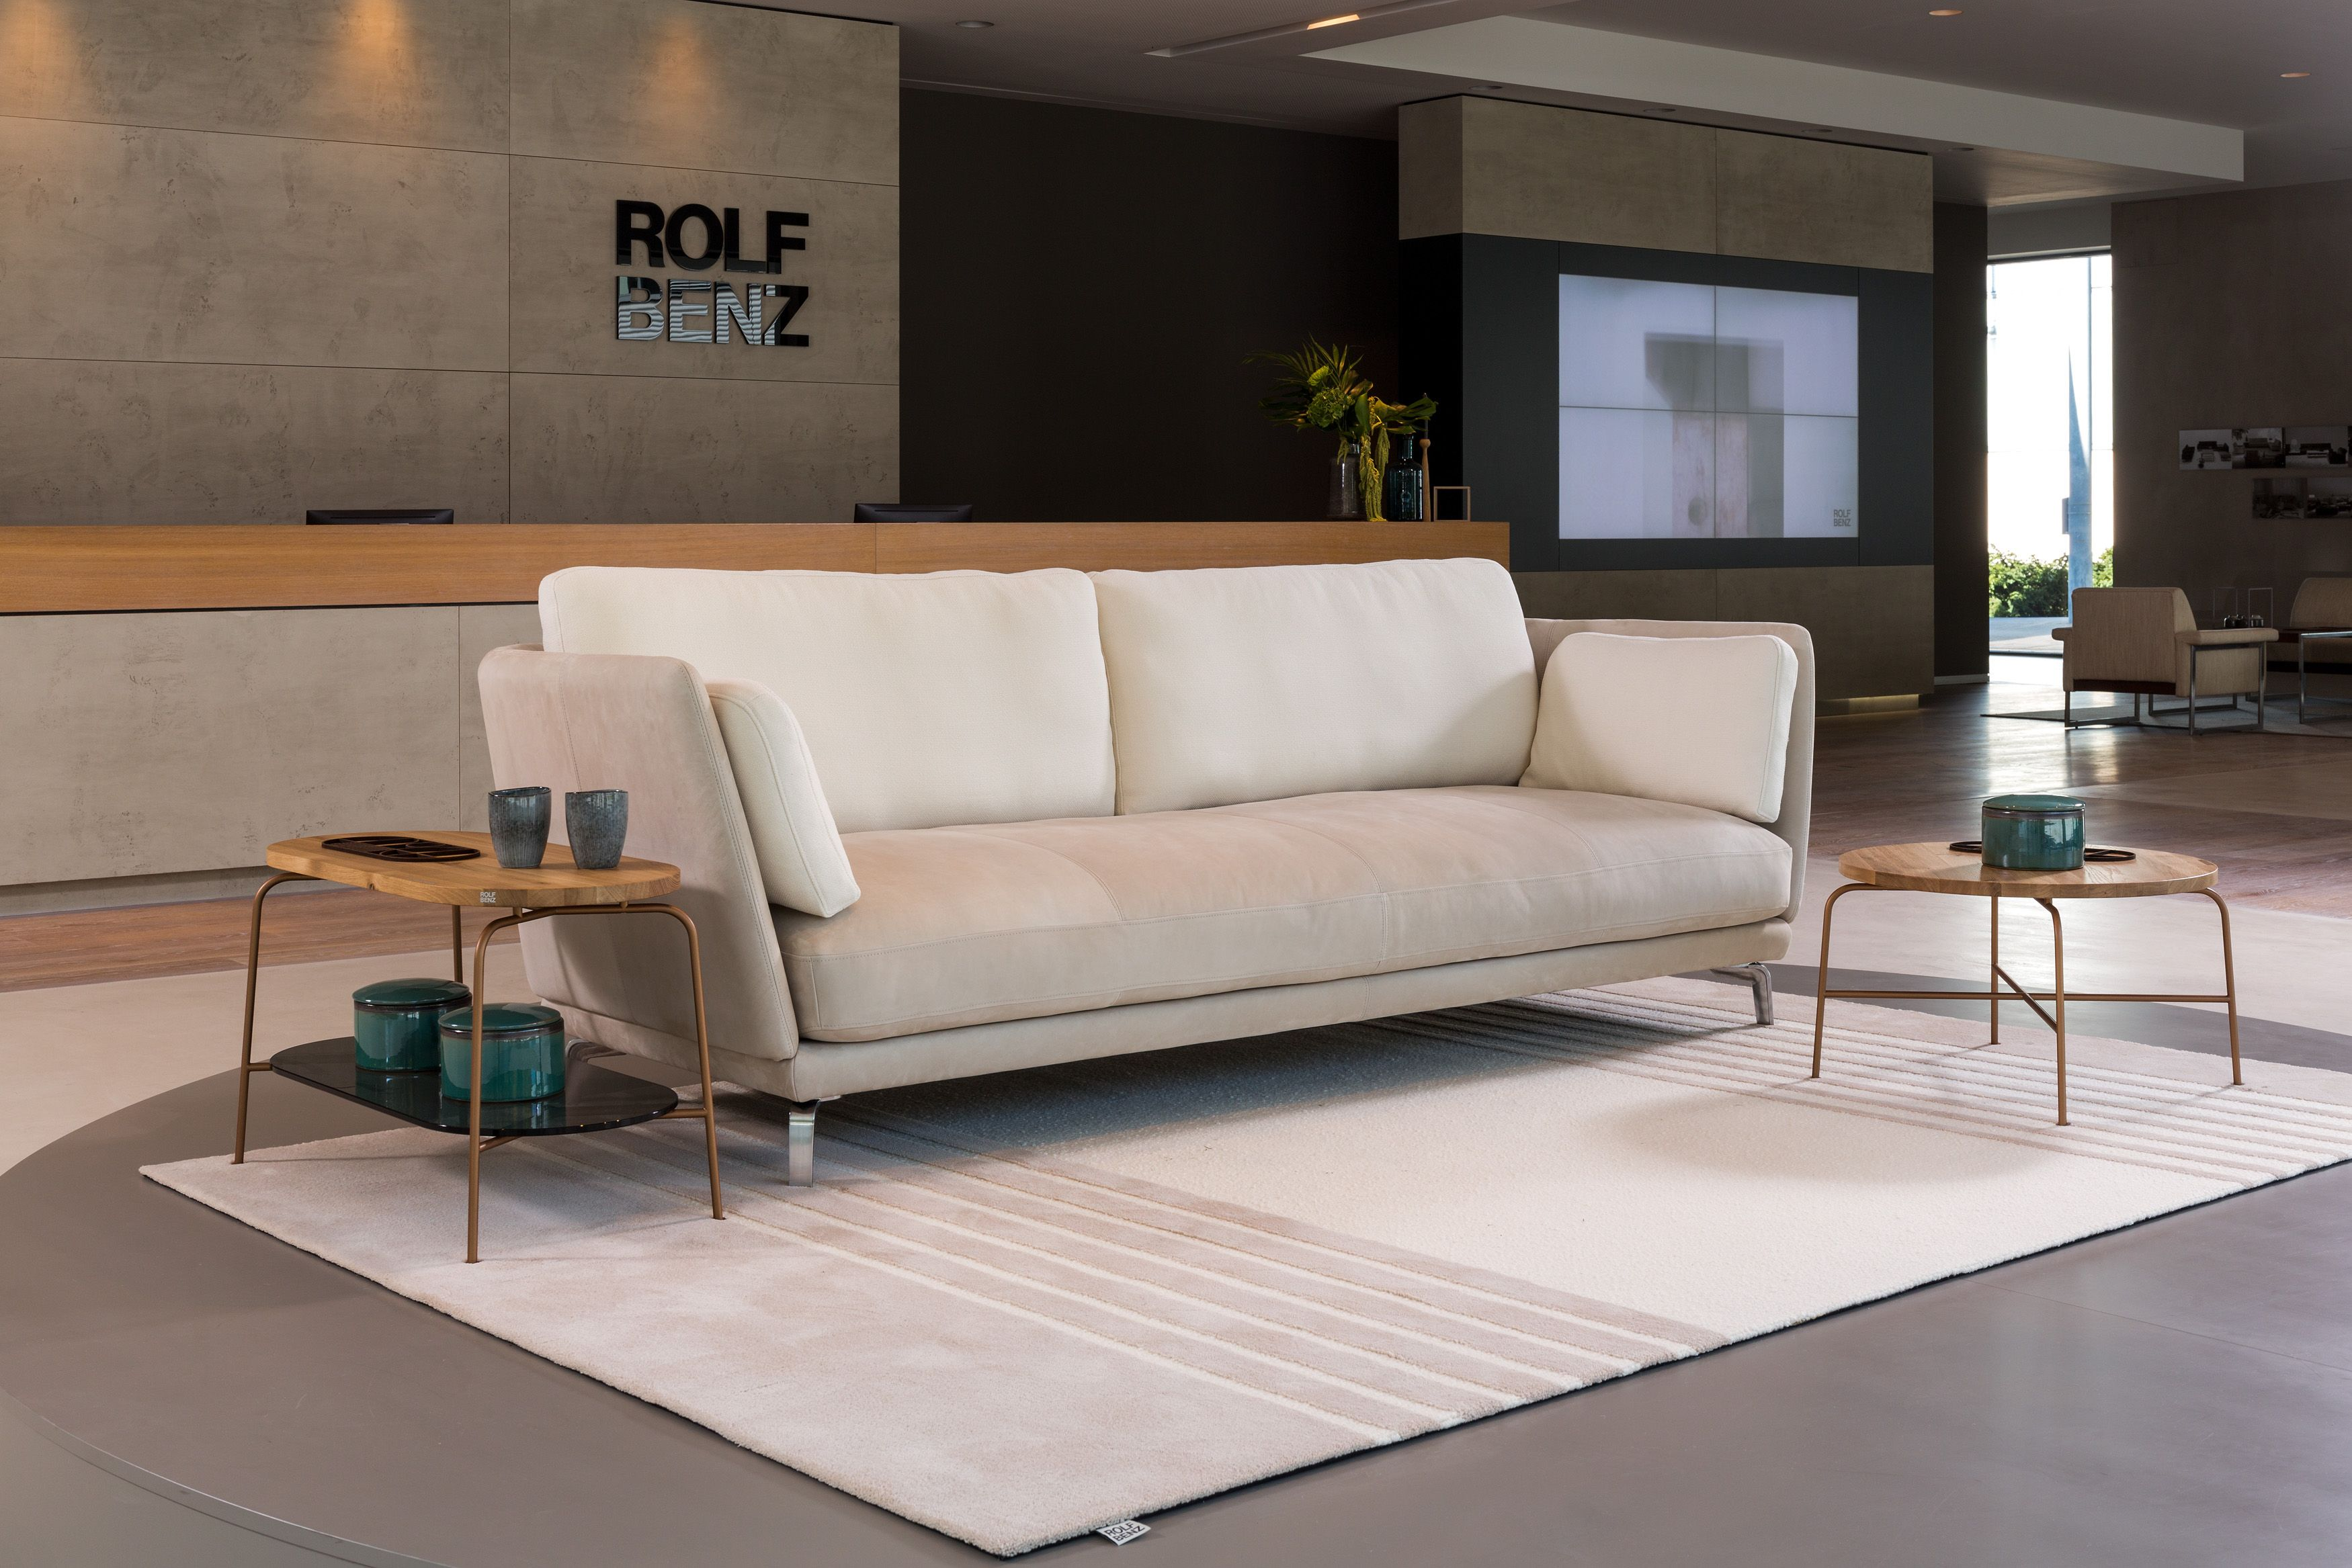 Seats En Sofa Heerlen The Rolf Benz Rondo Sofa Lounging With Style And Elegance In Any